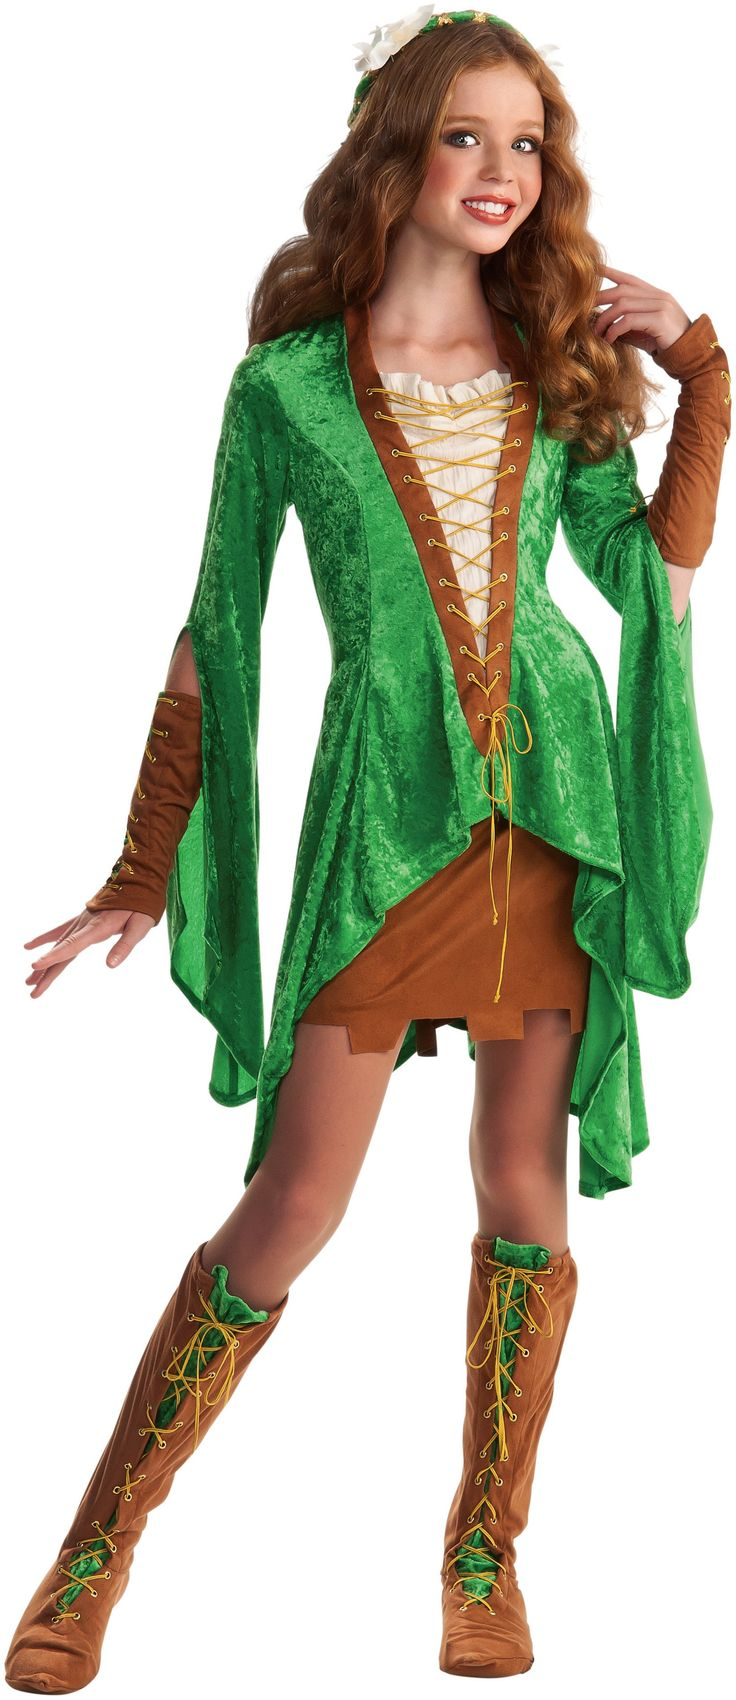 Maid Marion Tween Costume from Buycostumes.com